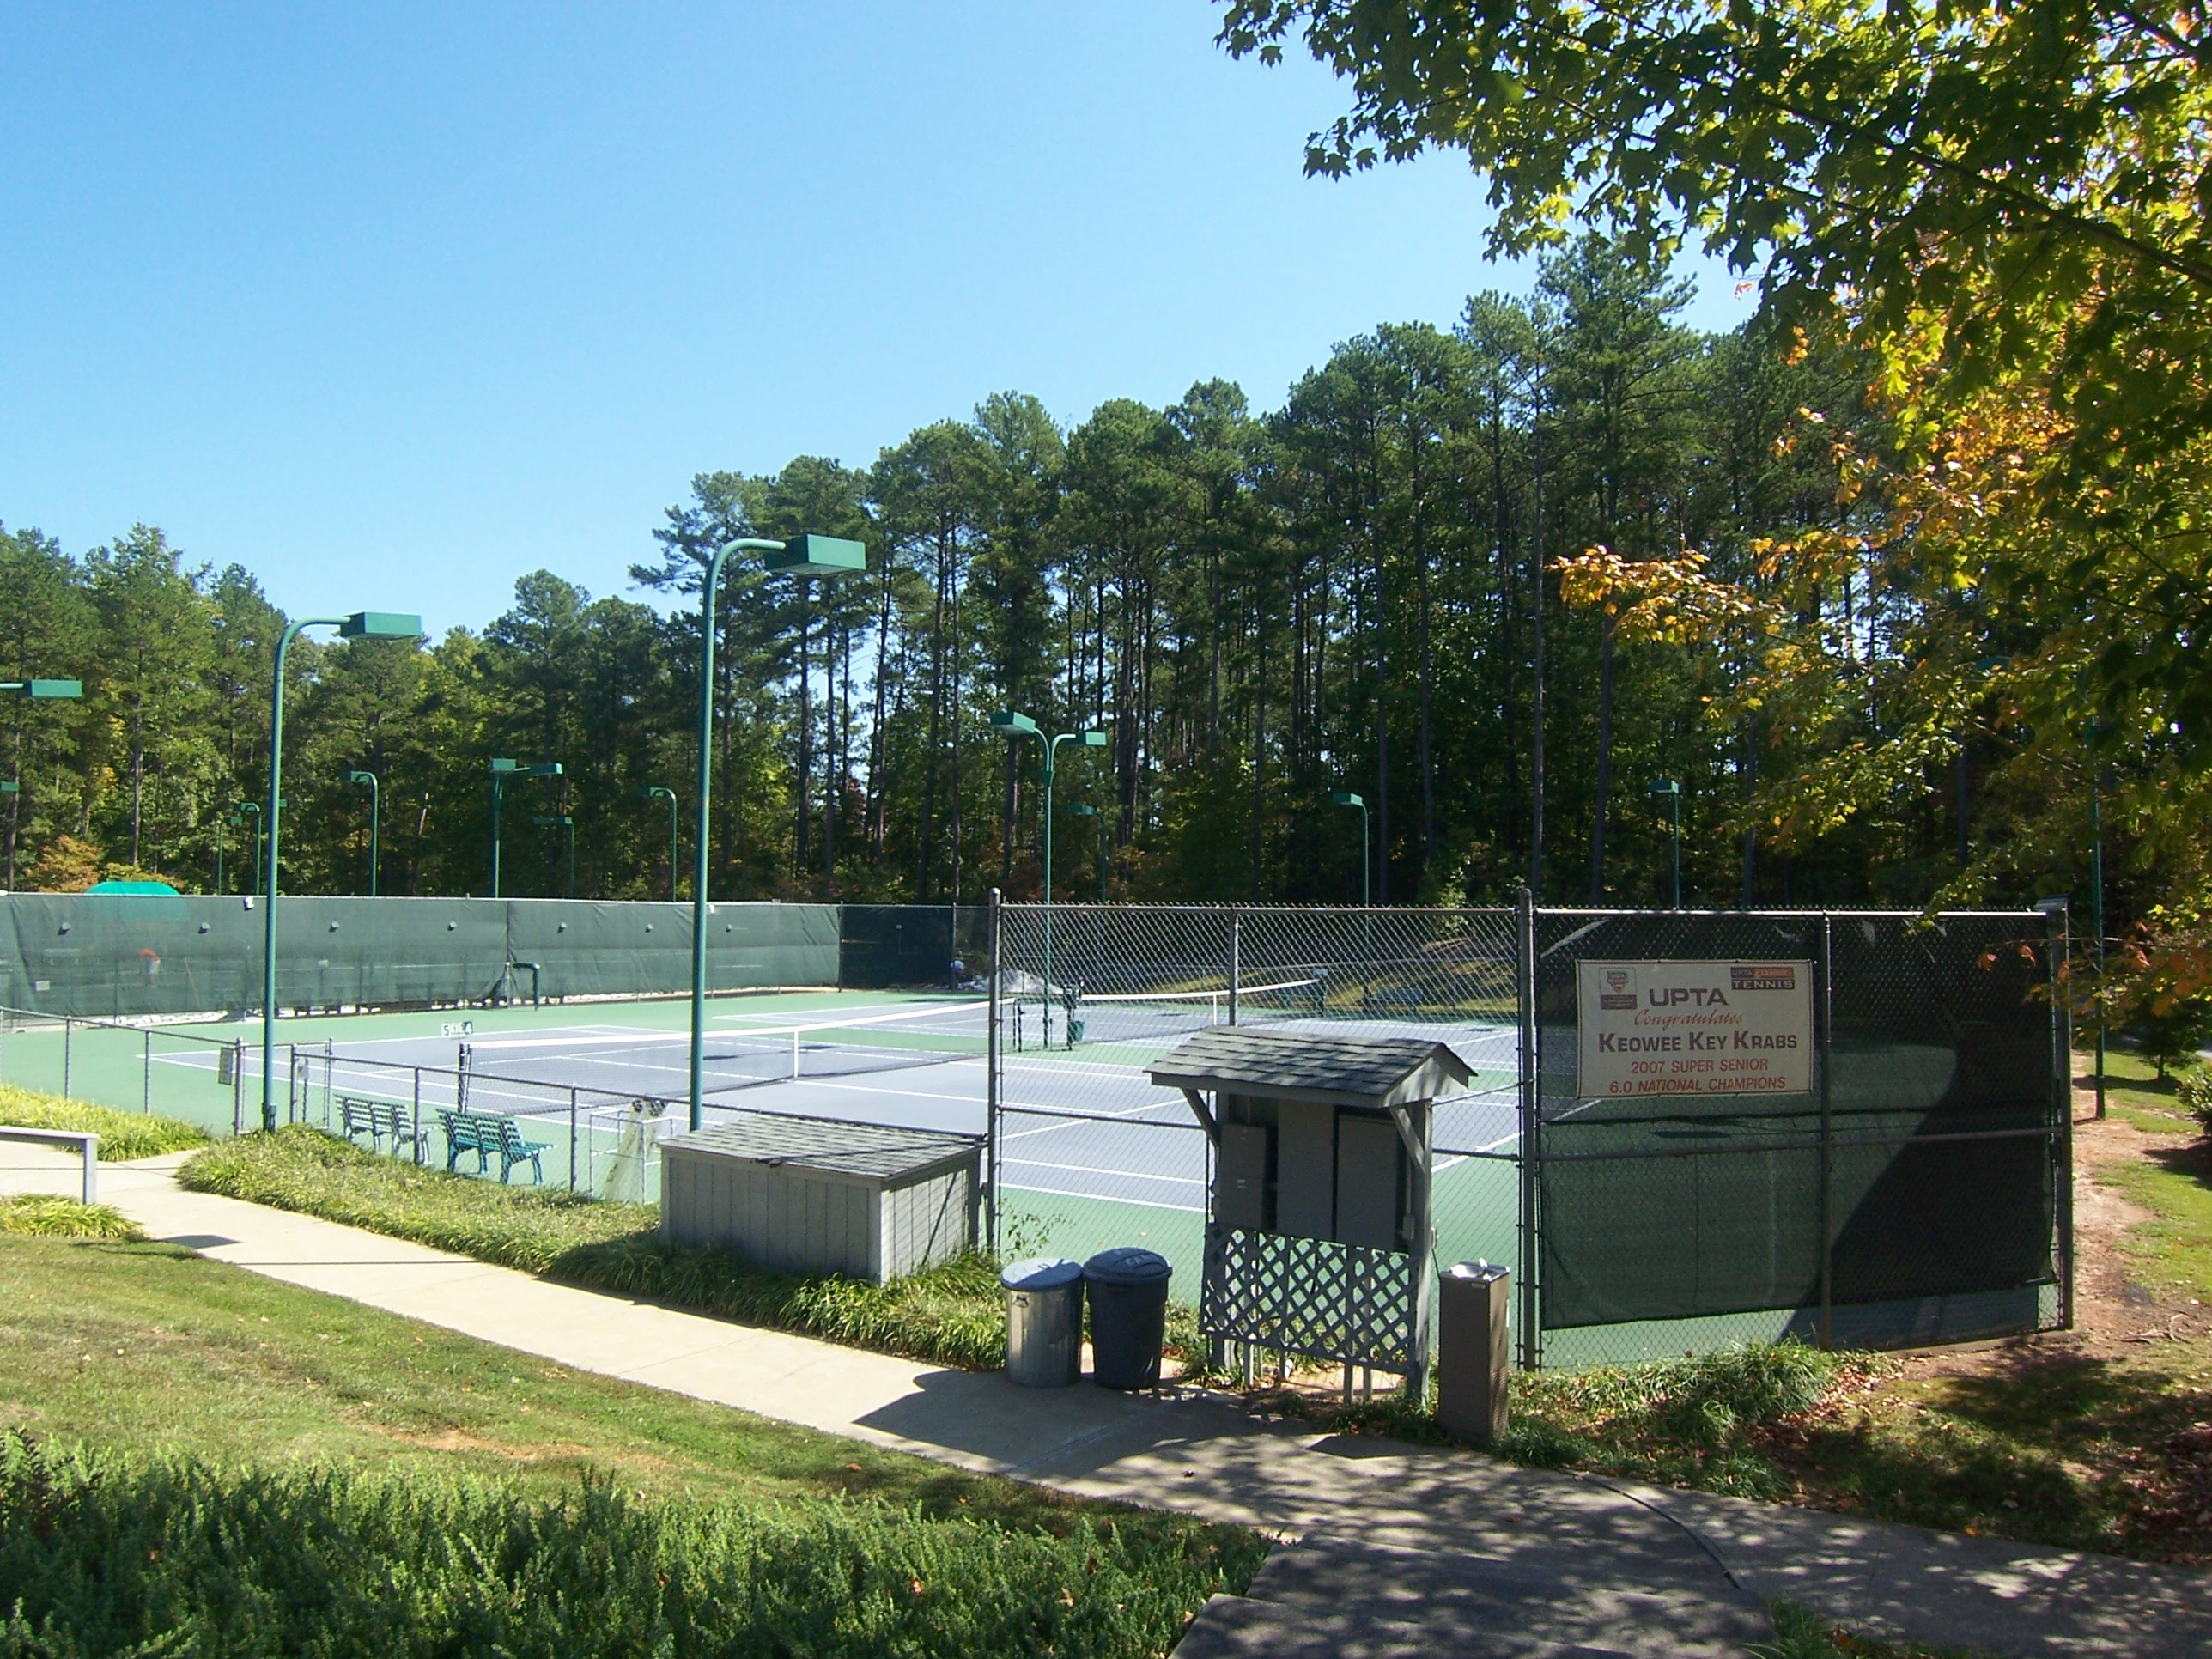 Keowee Key Tennis Courts